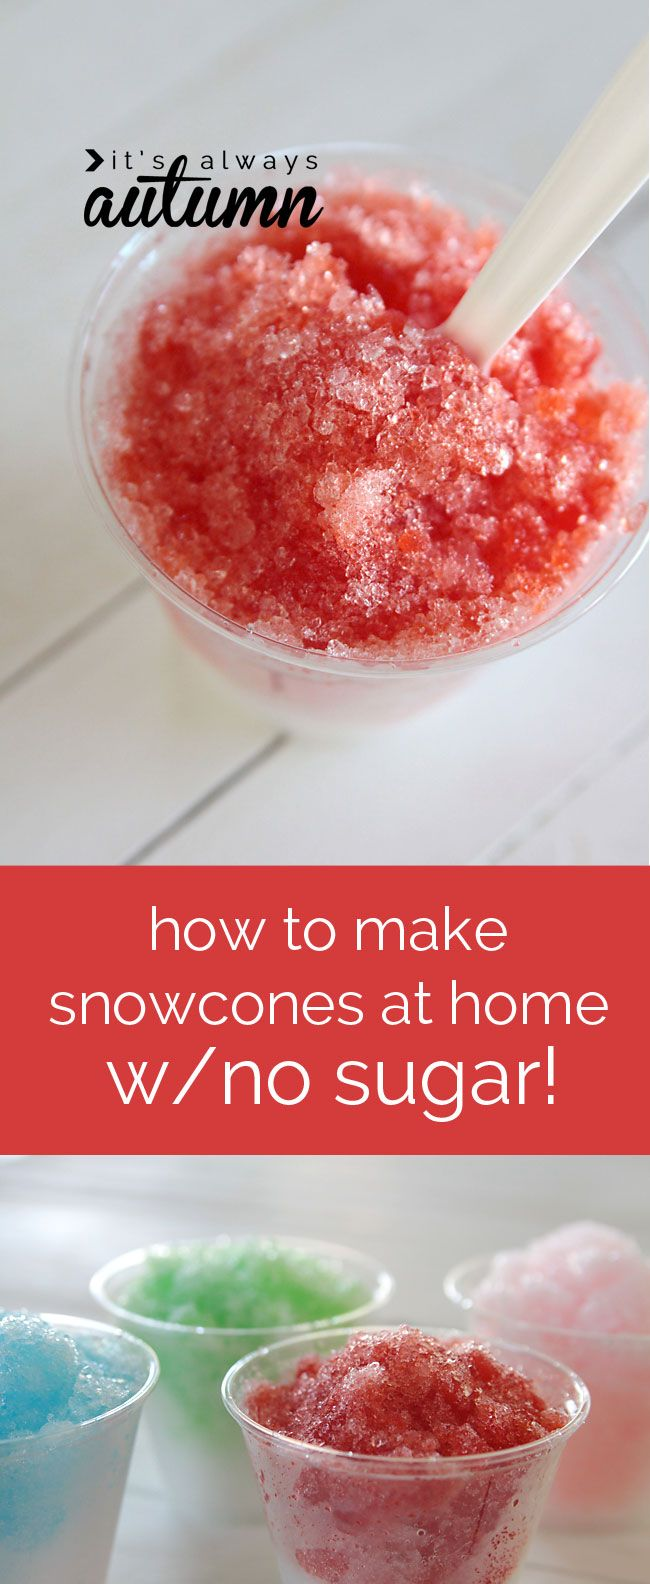 How To Make Easy Sugar Free Snow Cones At Home With Images